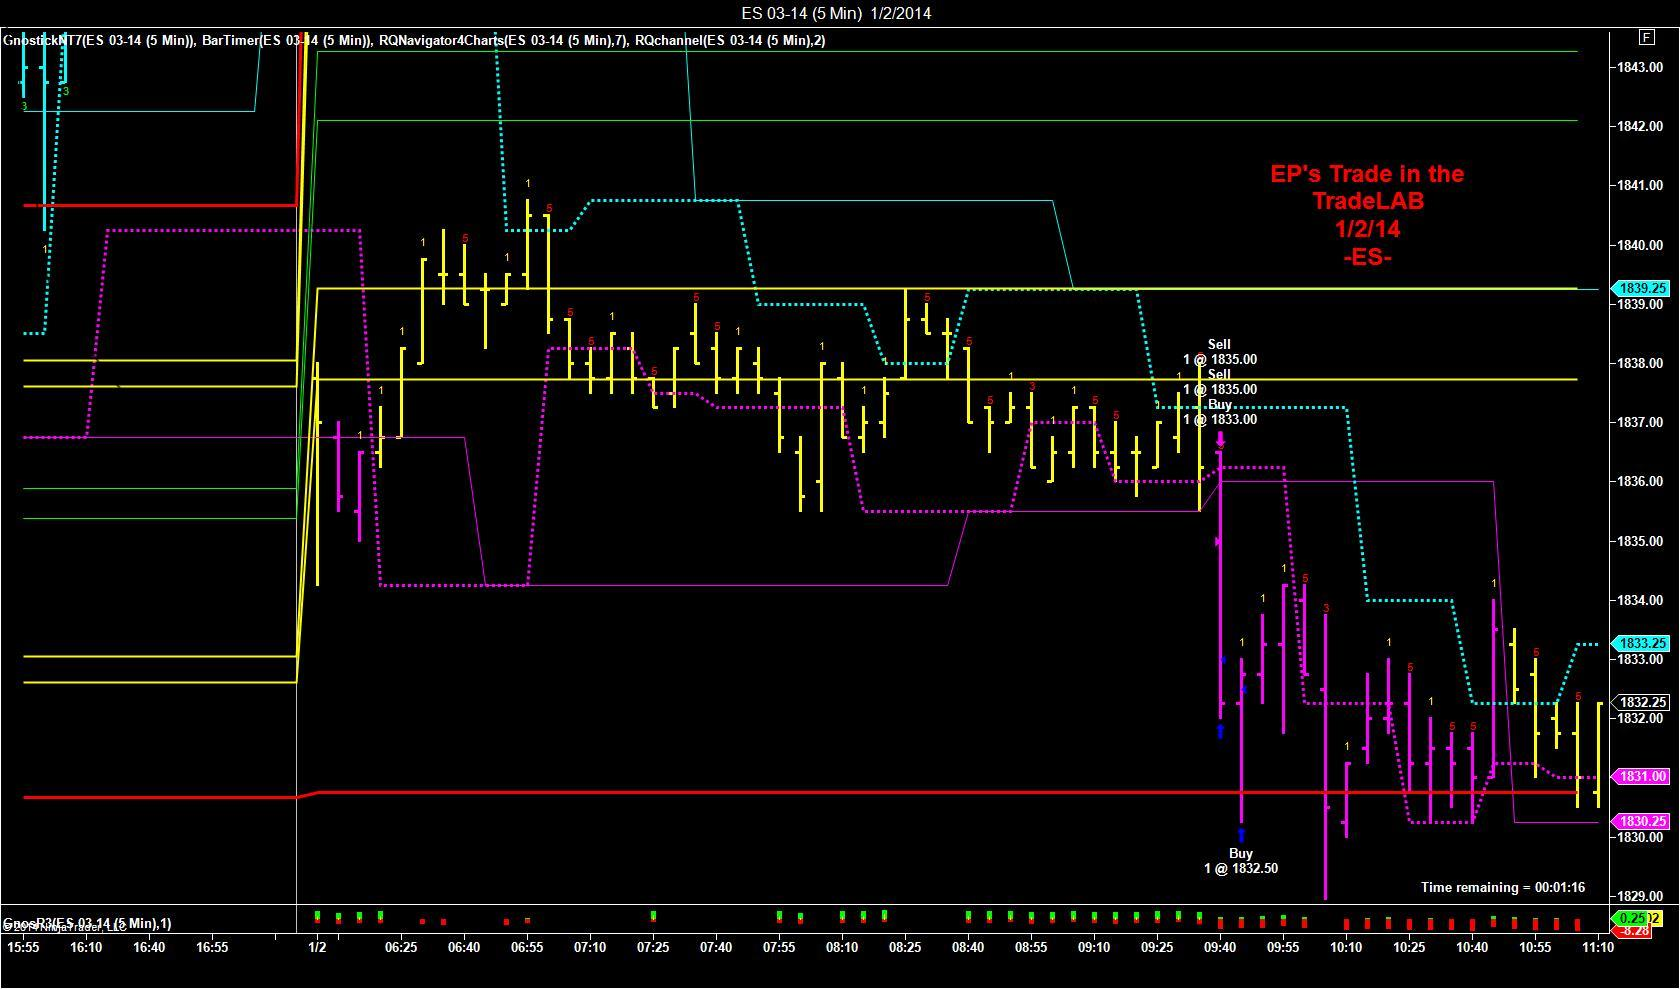 Forex trading room performance